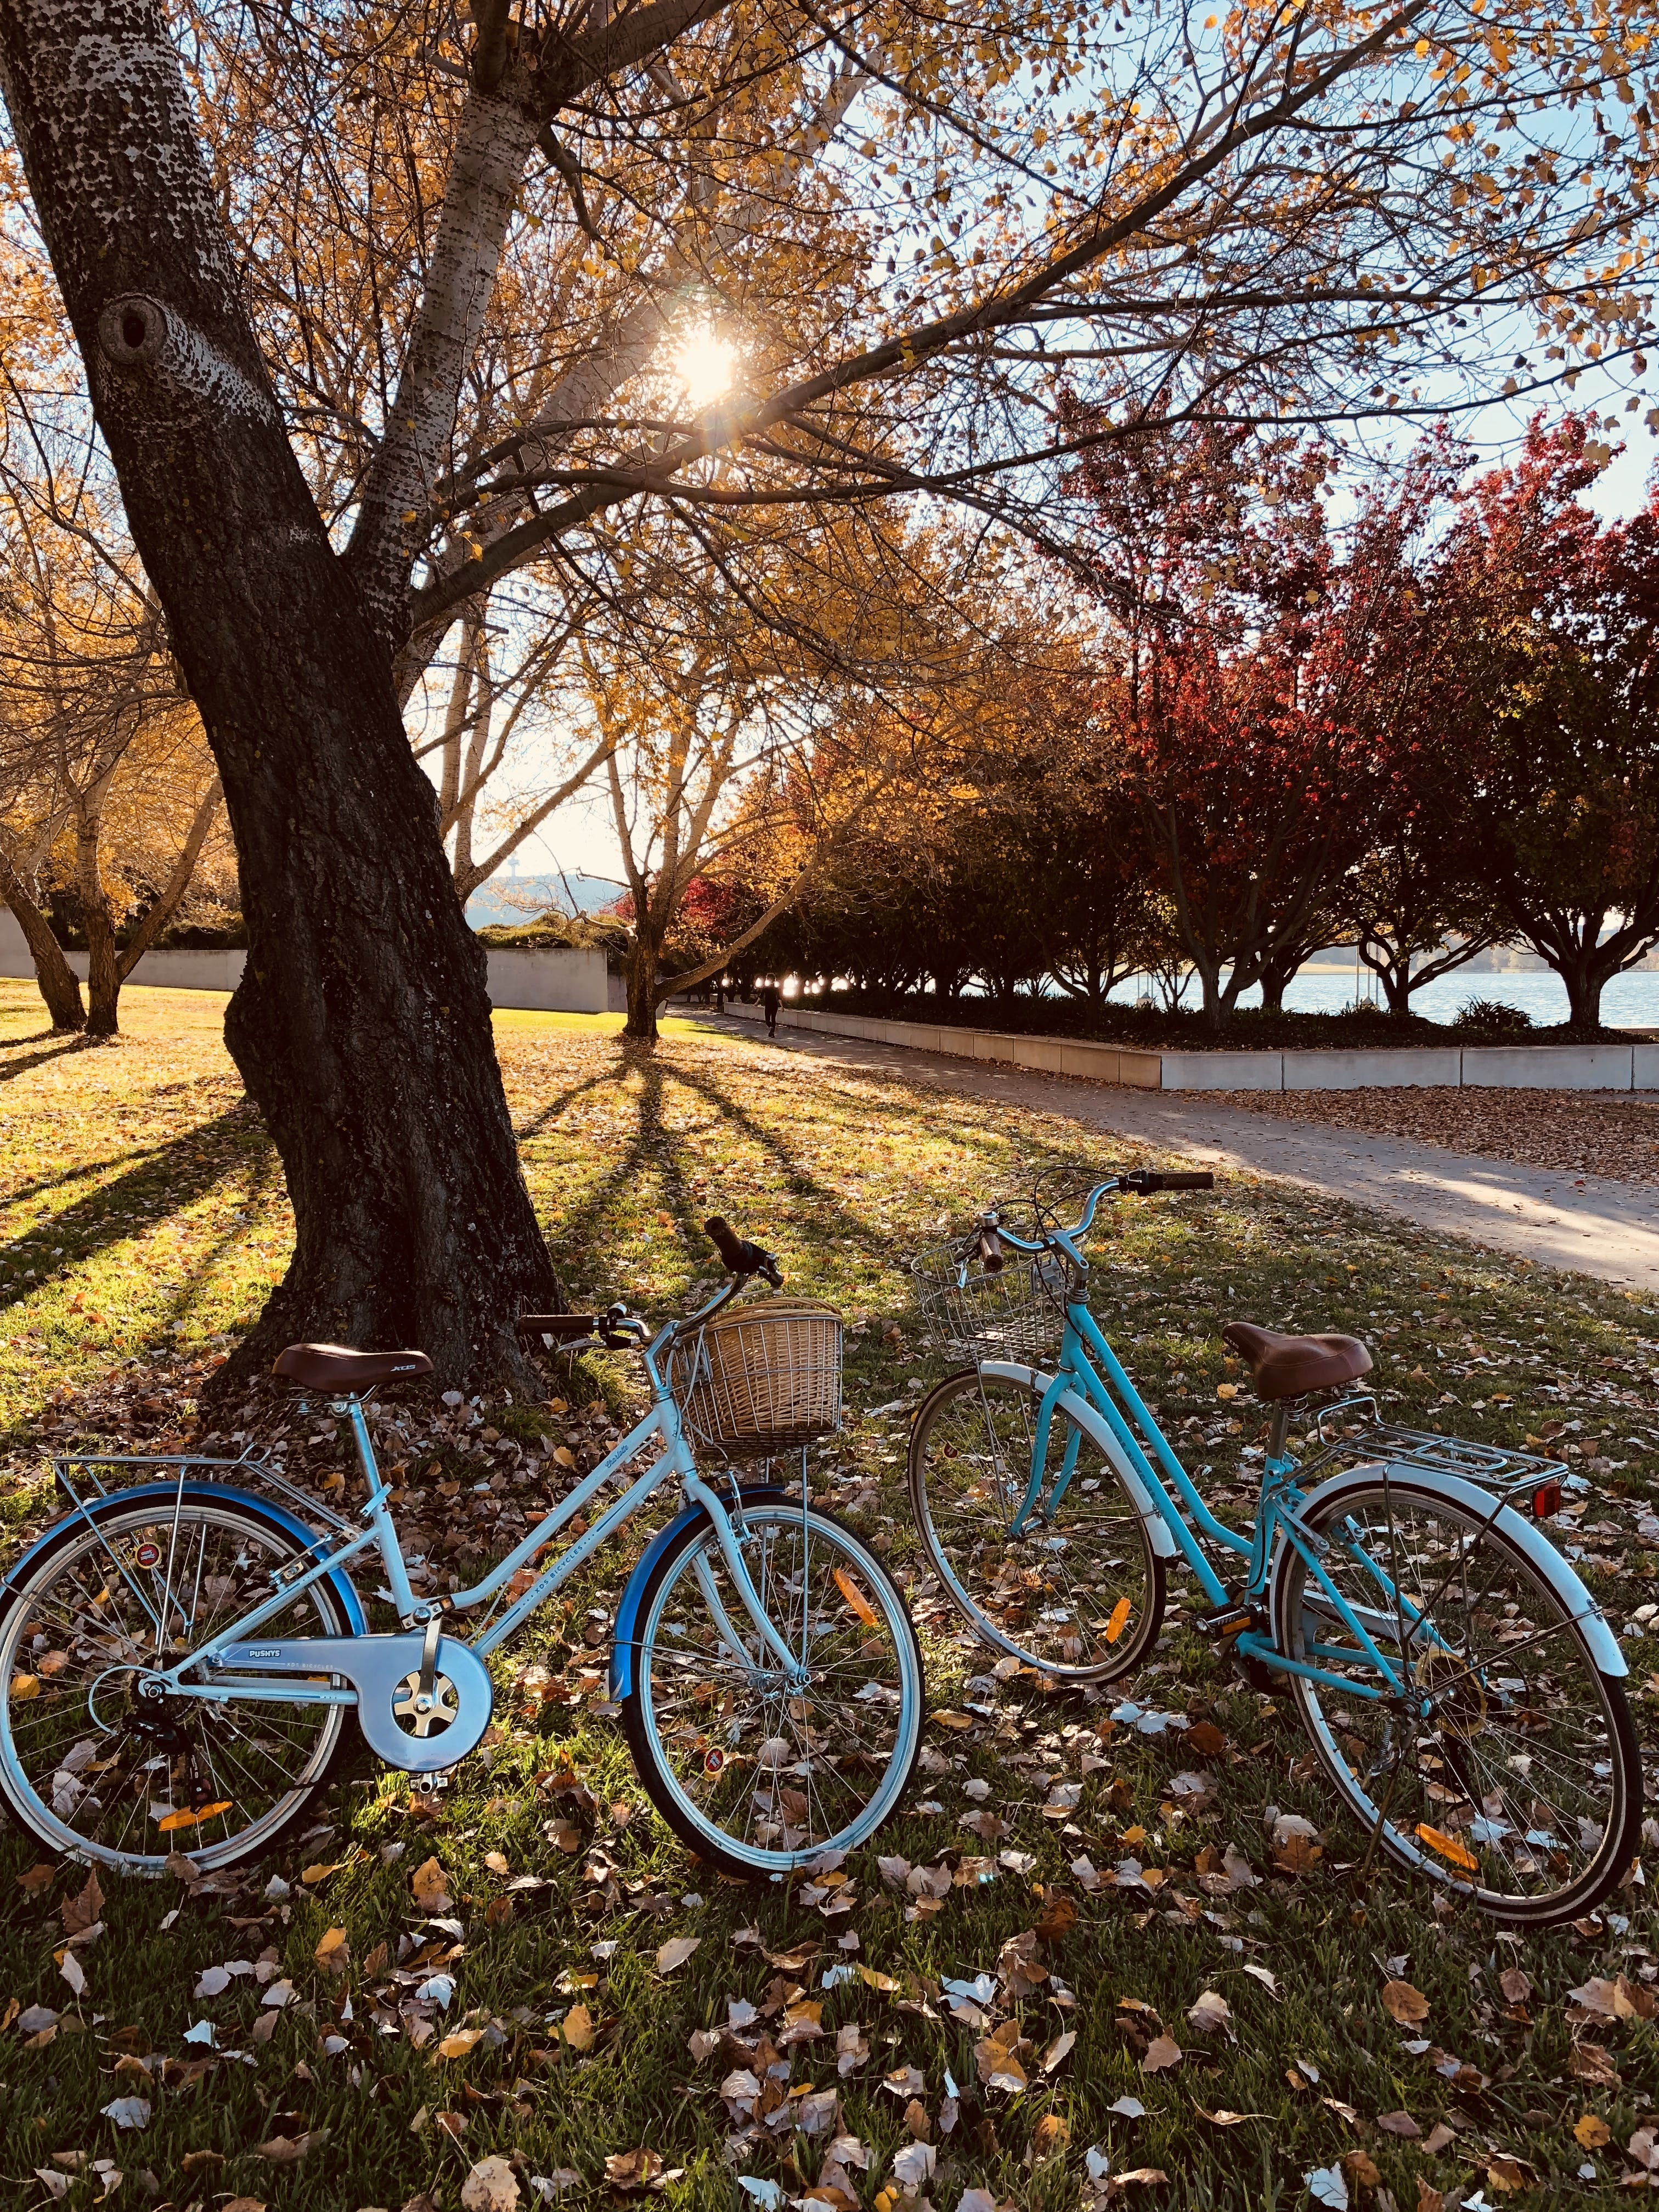 Two Teal Bicycles Near A Tree